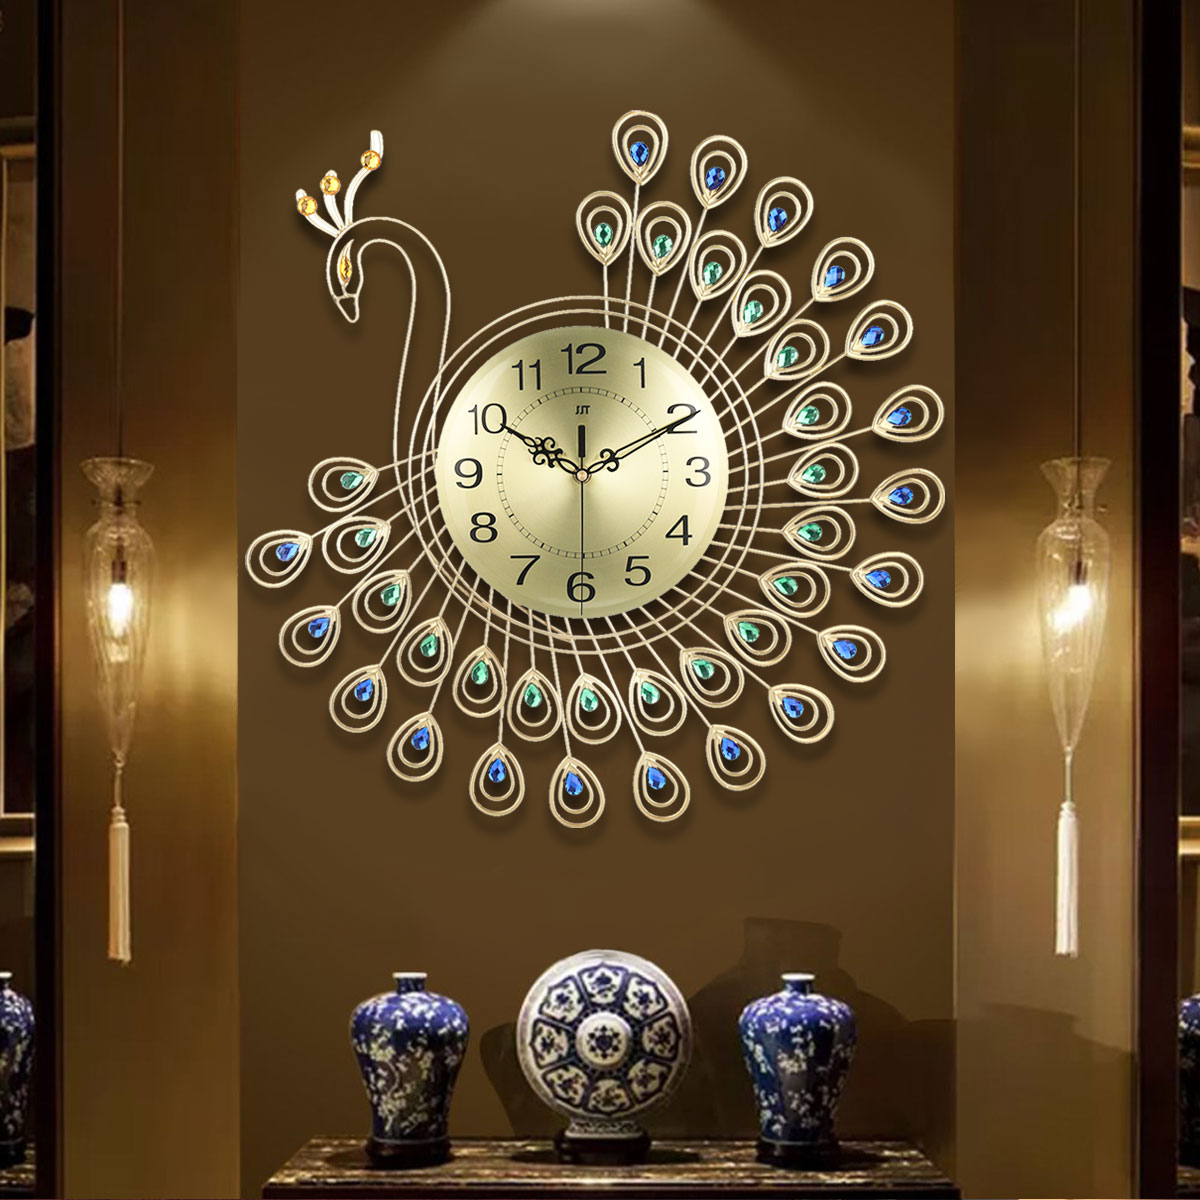 Large 3D Gold Diamond Peacock Wall Clock Metal Watch for Home Living Room Decoration DIY Clocks Crafts Ornaments Gift 53x53cm